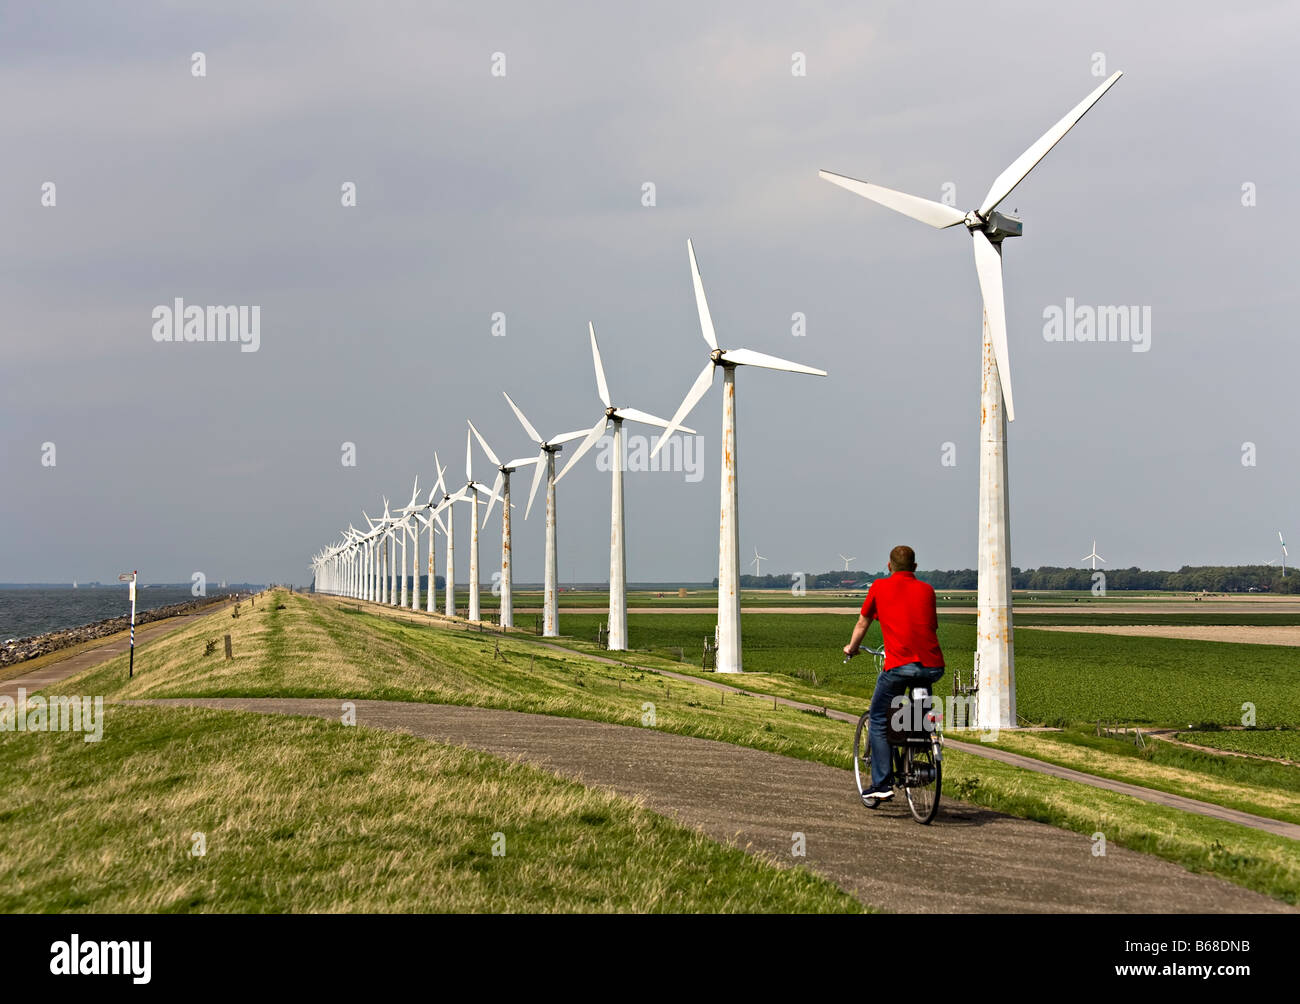 Man cycling on dyke at Essent windpark Westermeerdijk Netherlands - Stock Image